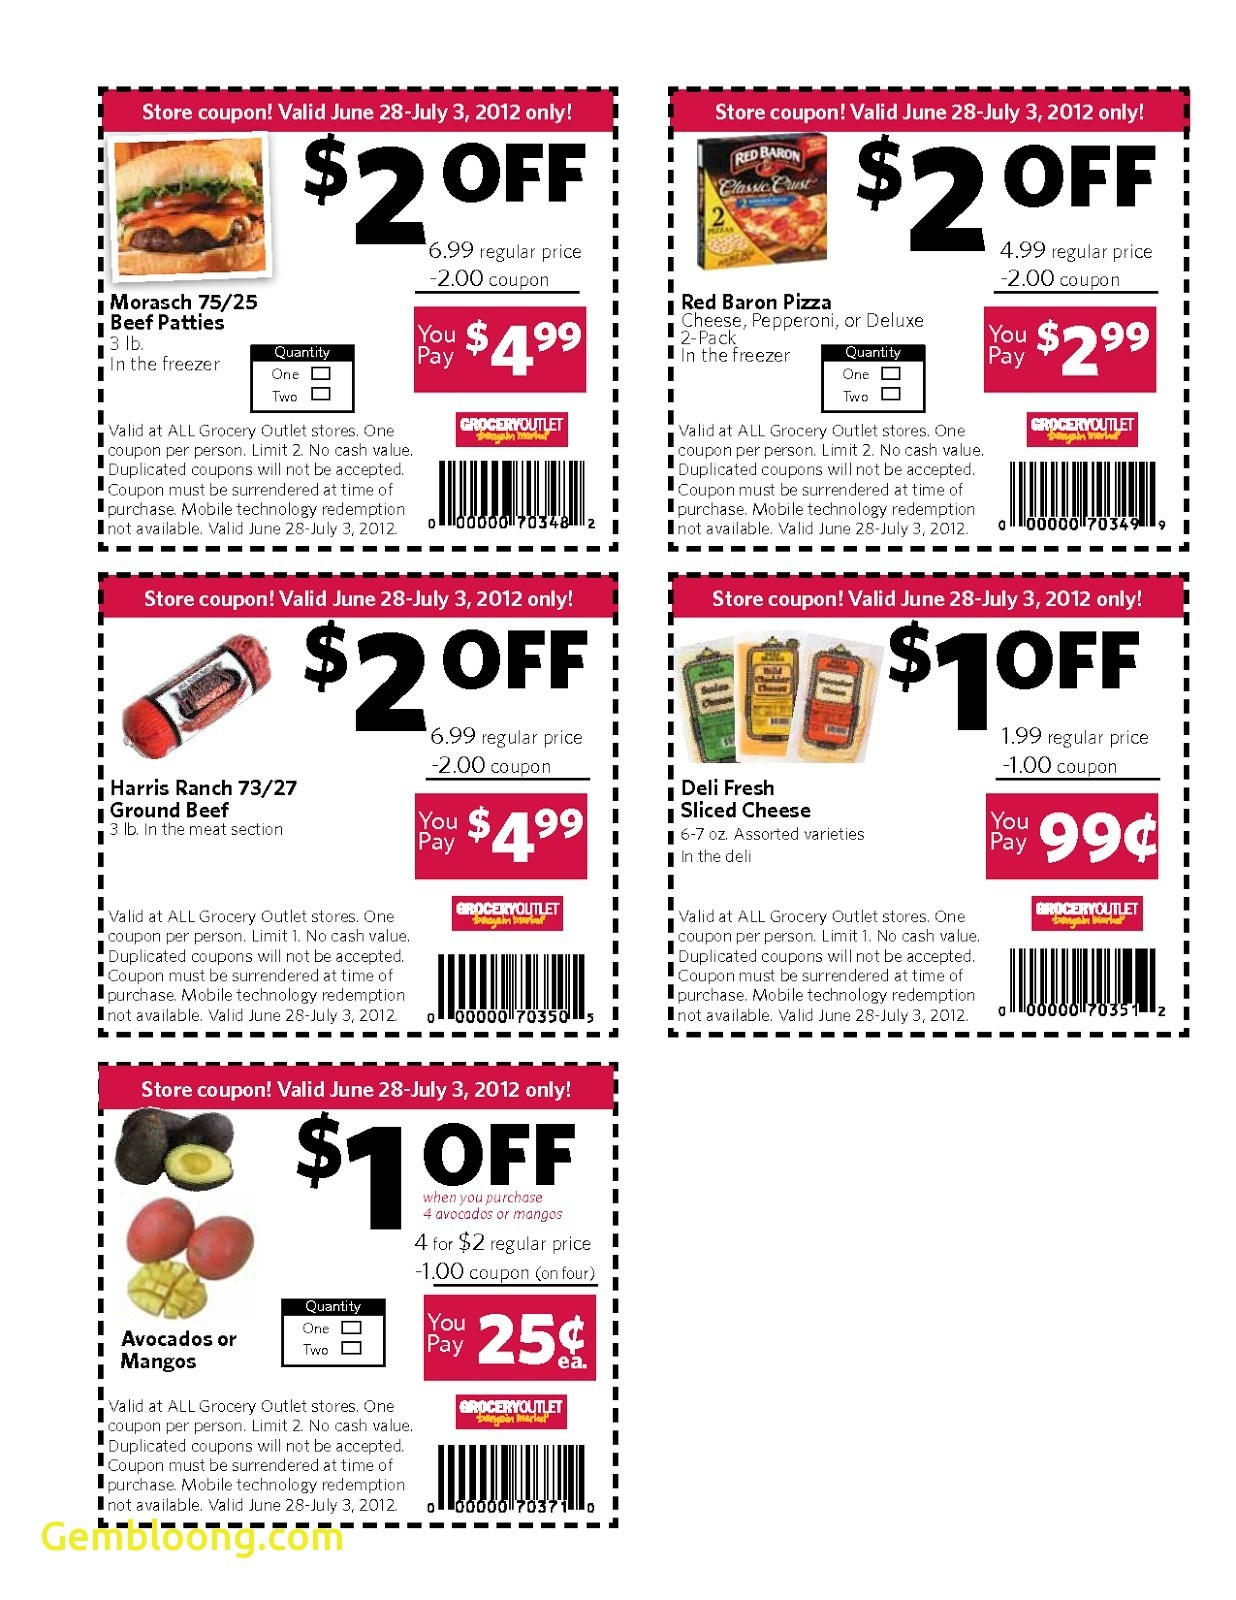 Manufacturers Coupons 2018 Printable Grocery - Free Printable Grocery Coupons